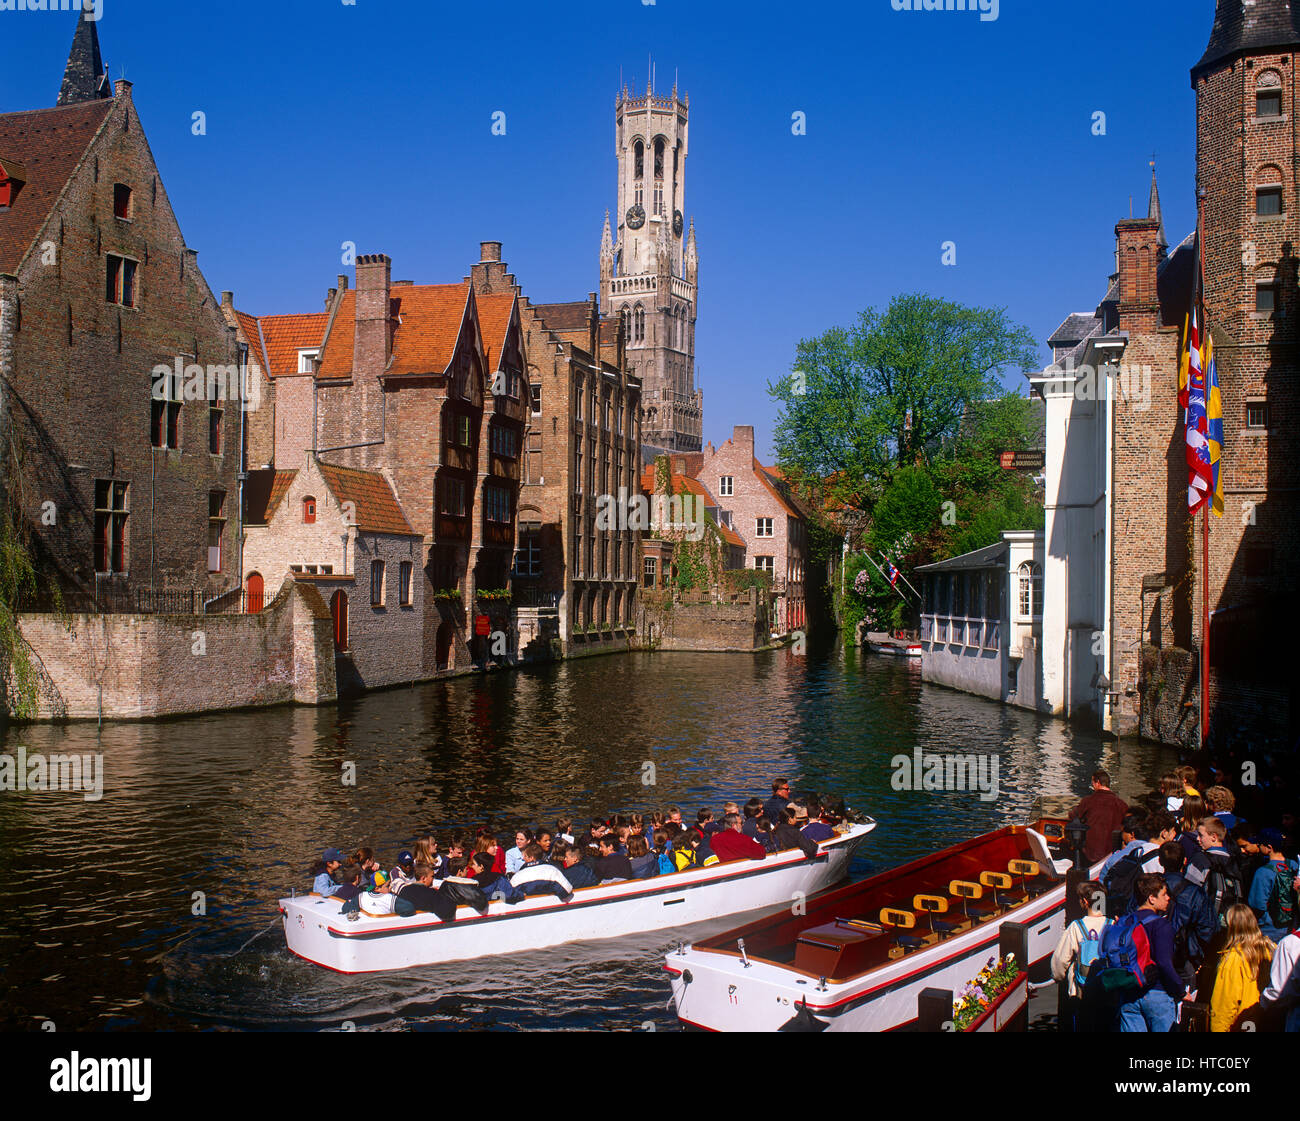 Pleasure boats and tourists on the Dijver Canal with the Belfry in background, Bruges, Belgium. - Stock Image